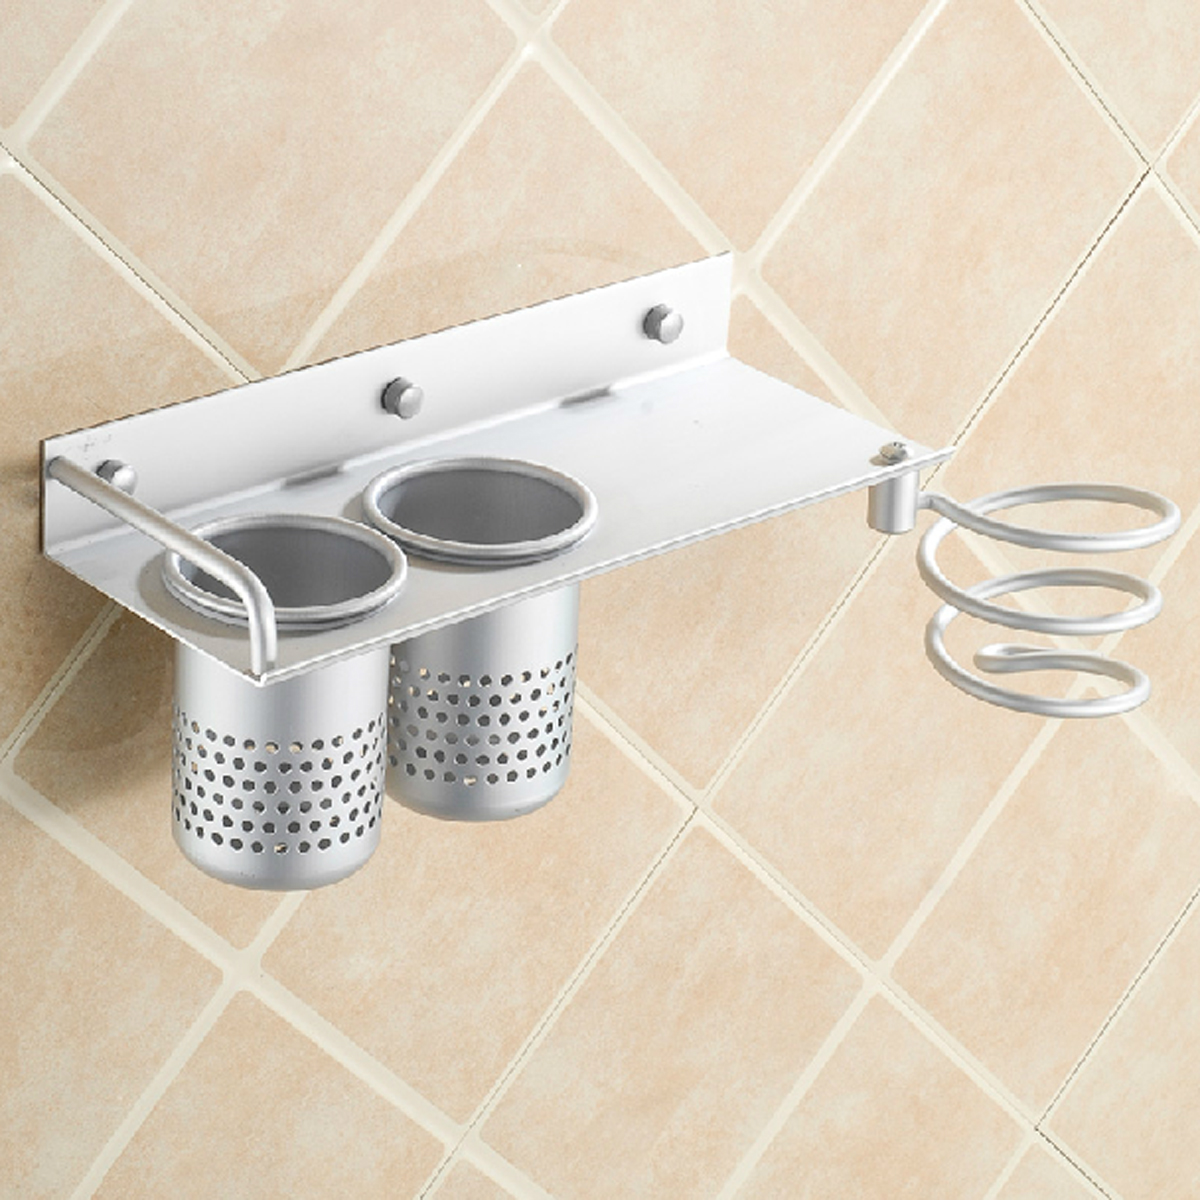 Hair Dryer Storage Organizer Rack Comb Holder Wall Mounted Stand ...